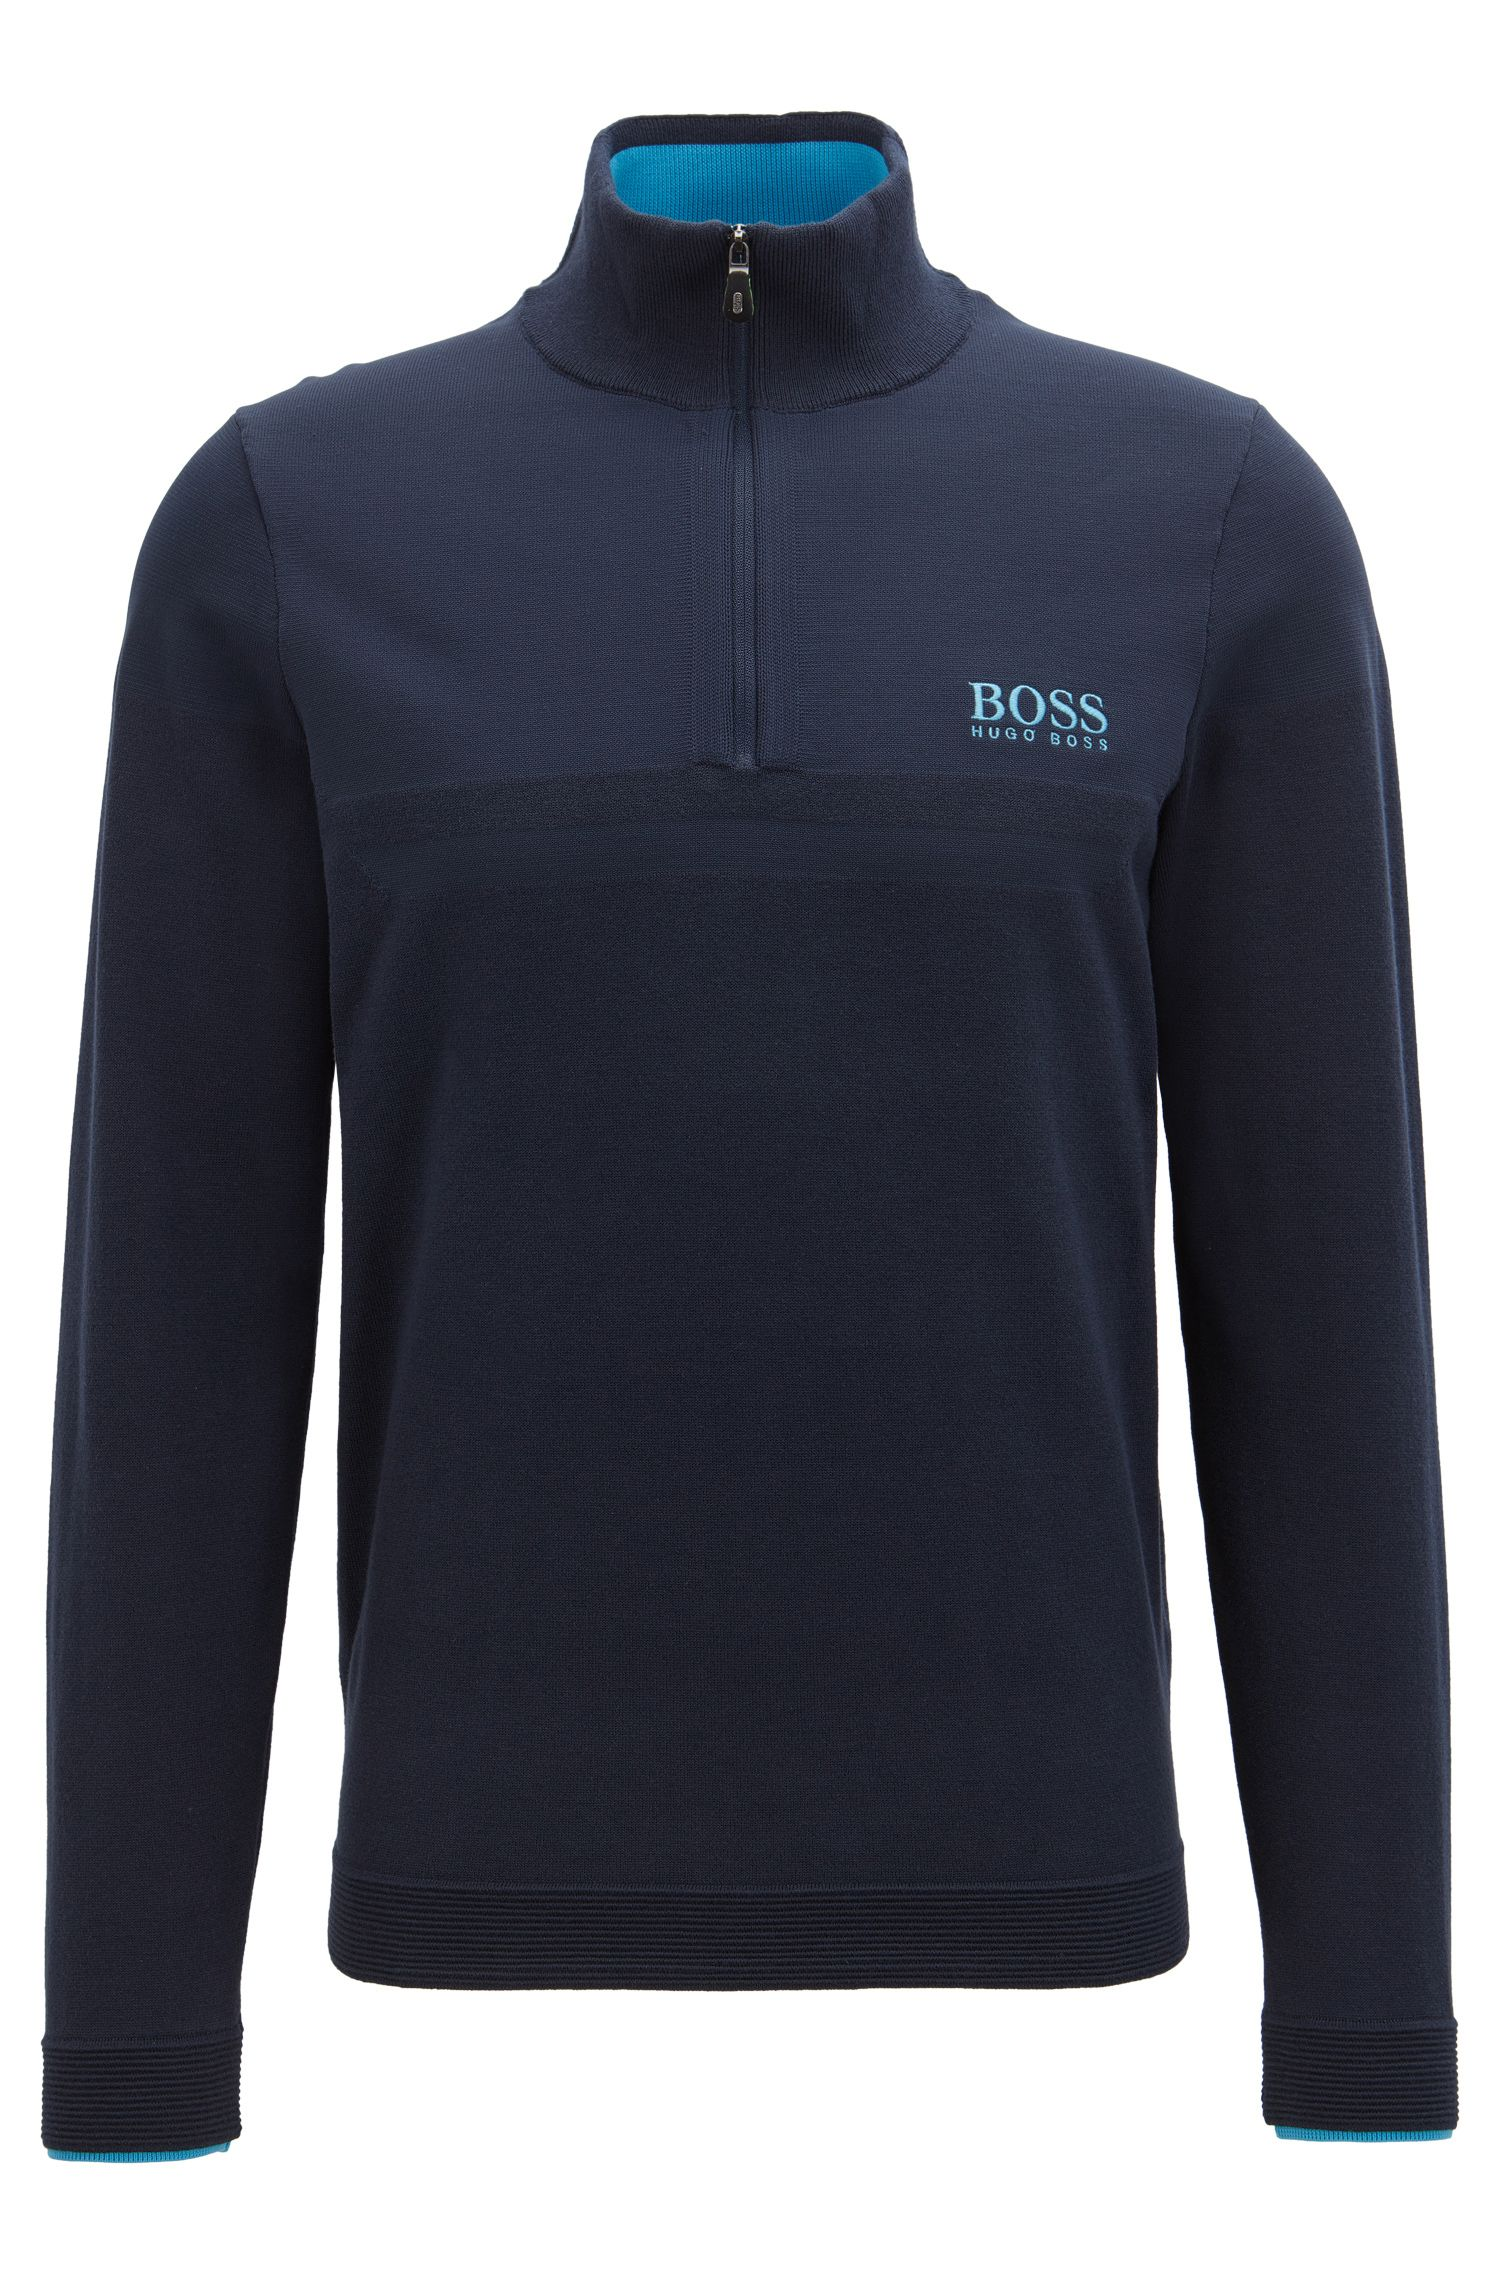 Long-sleeved zip-neck sweater with COOLMAX®